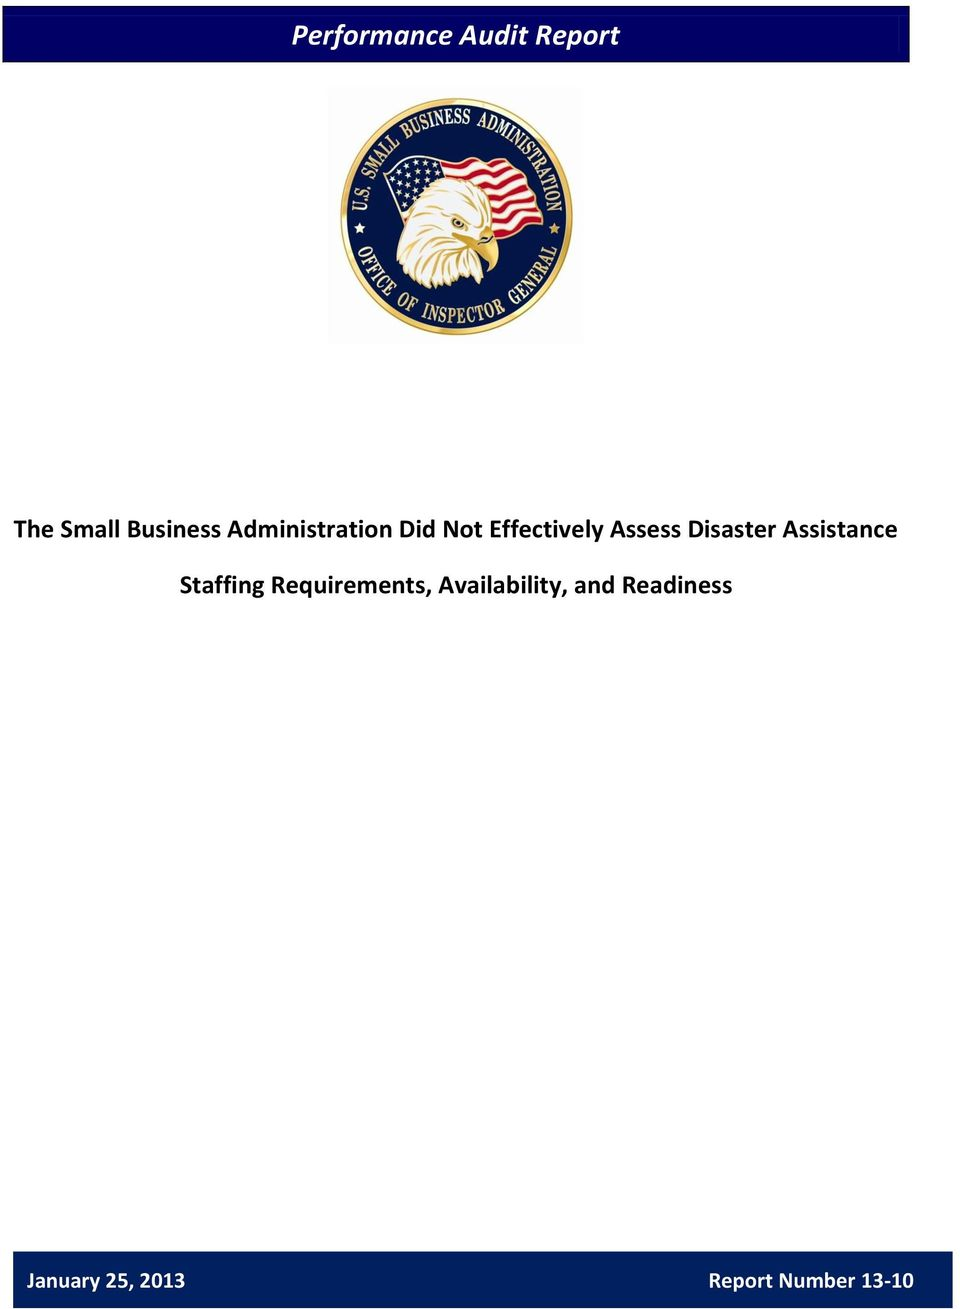 Disaster Assistance Staffing Requirements,